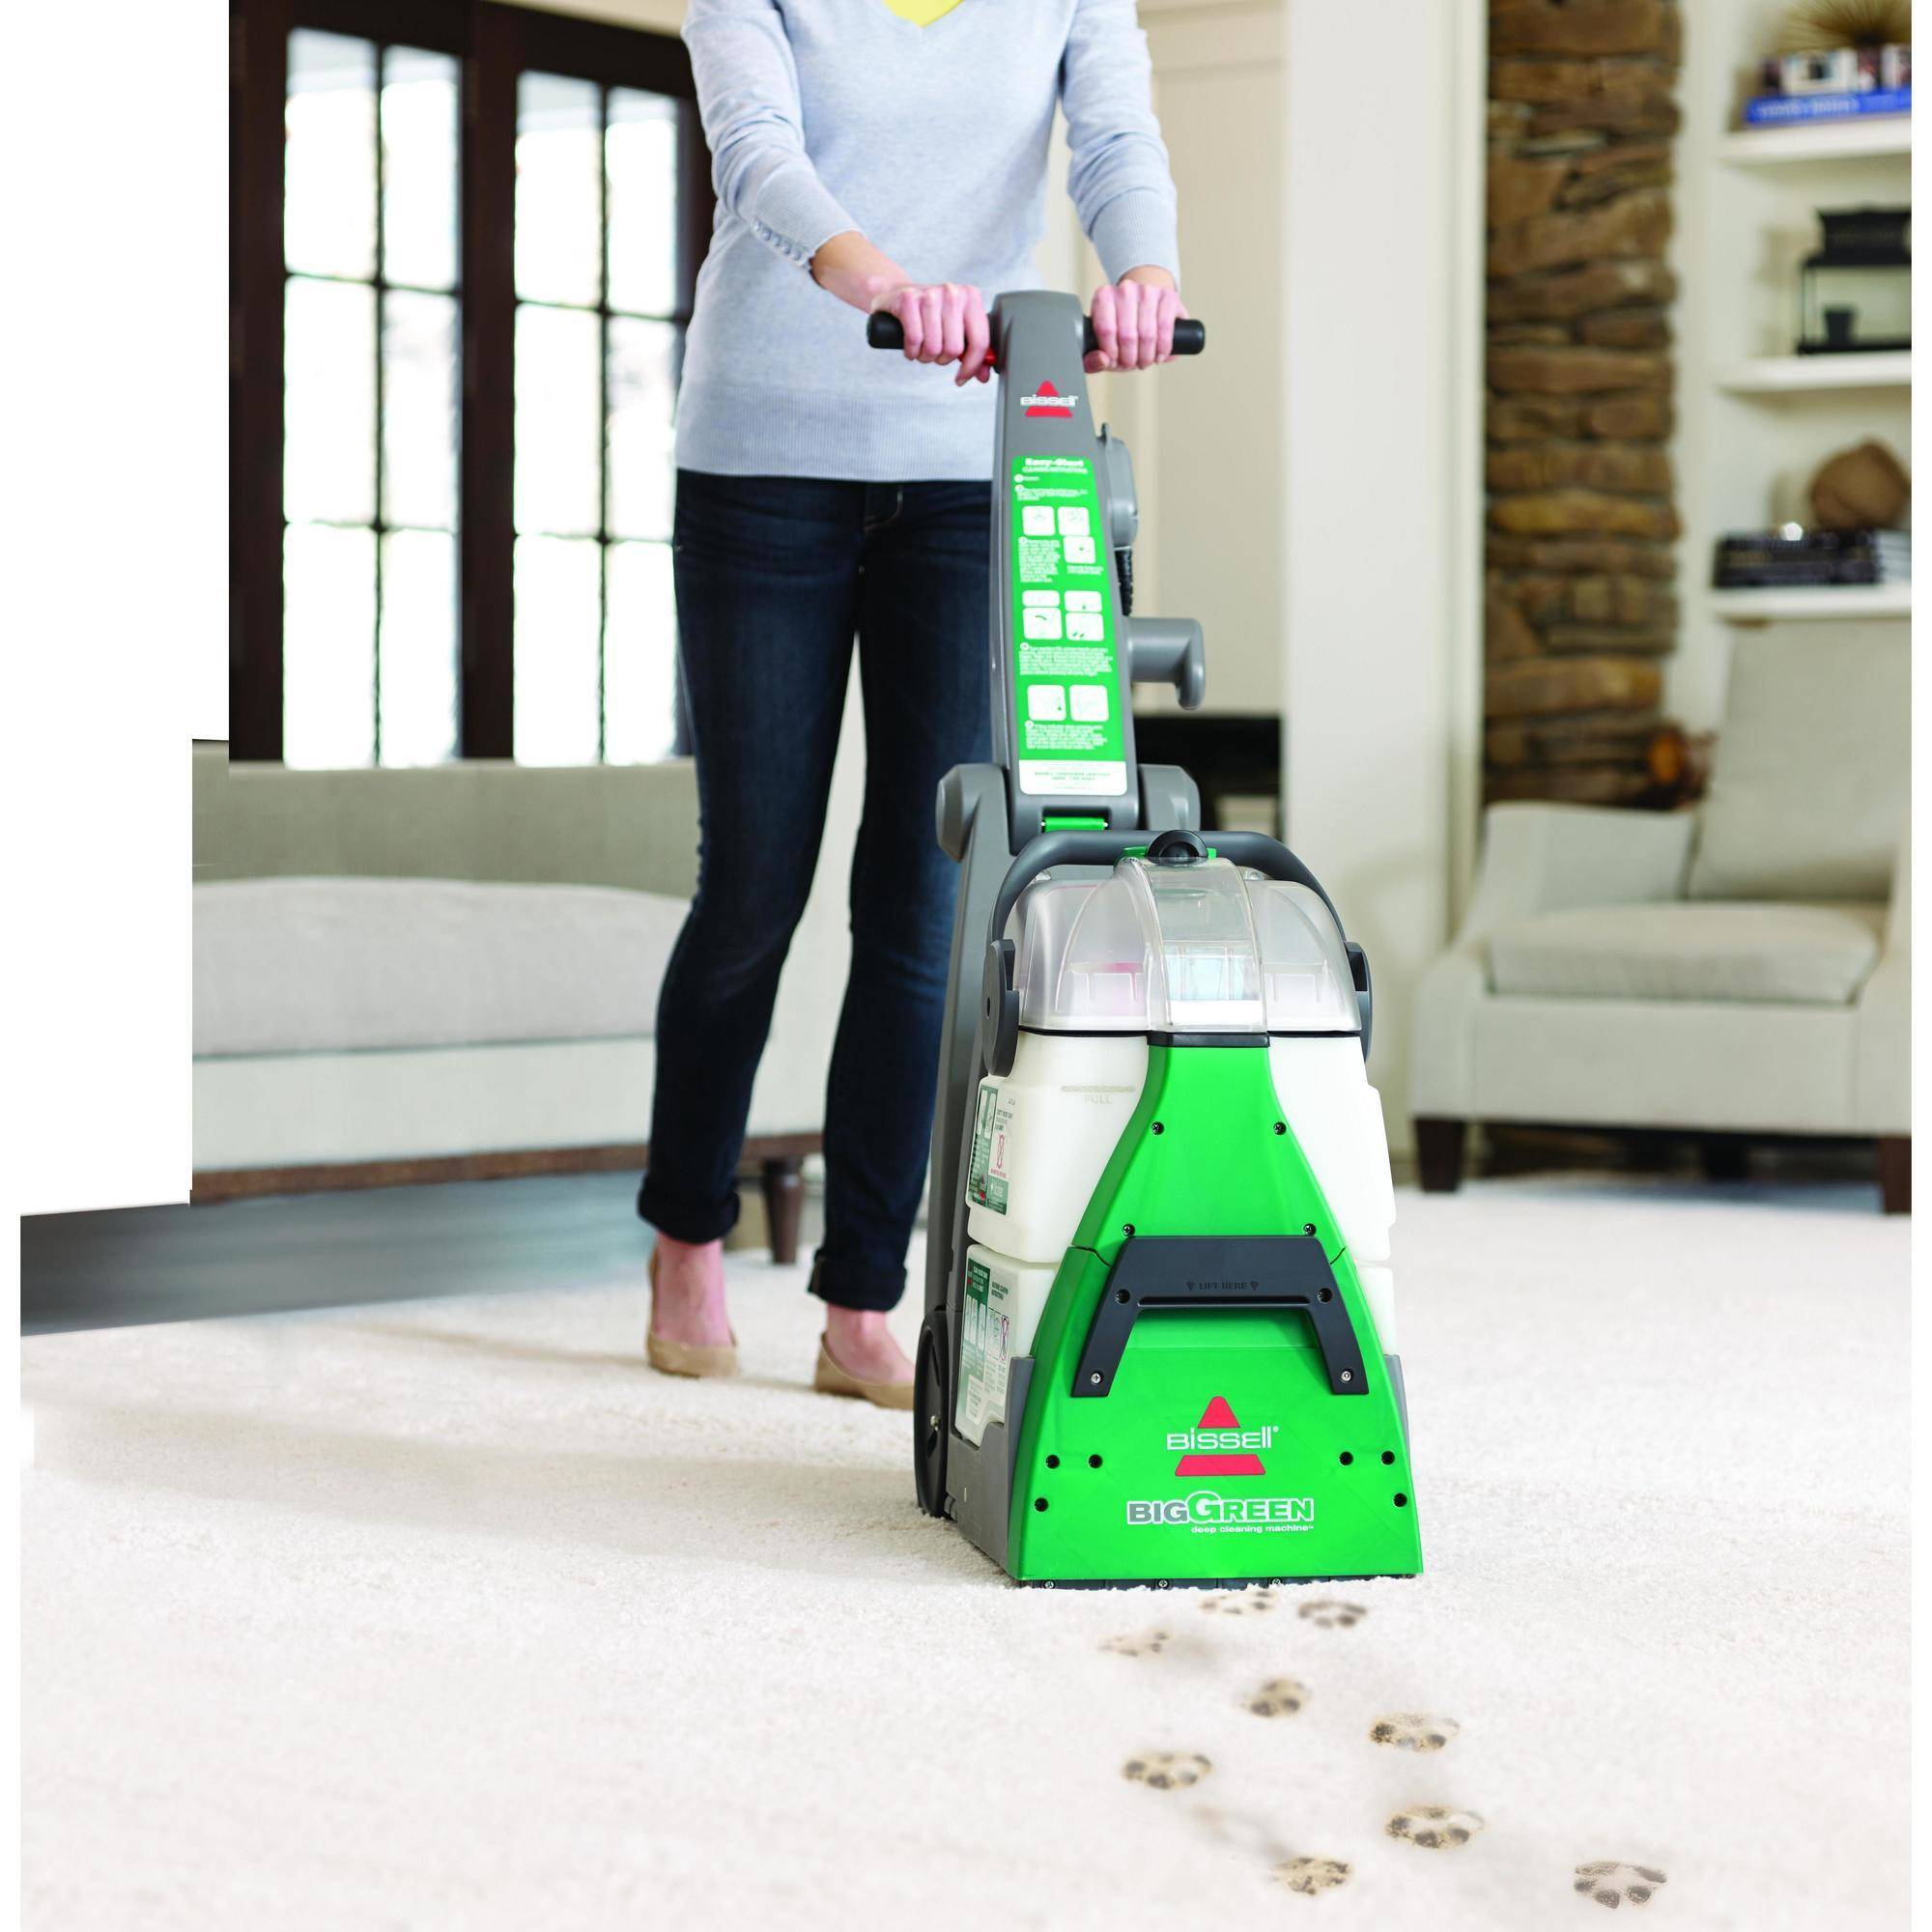 Carpet Cleaning Machine Reviews Best Rated Cleaners And. Carpet Cleaning Machine Ranking   Crowdsmachine com